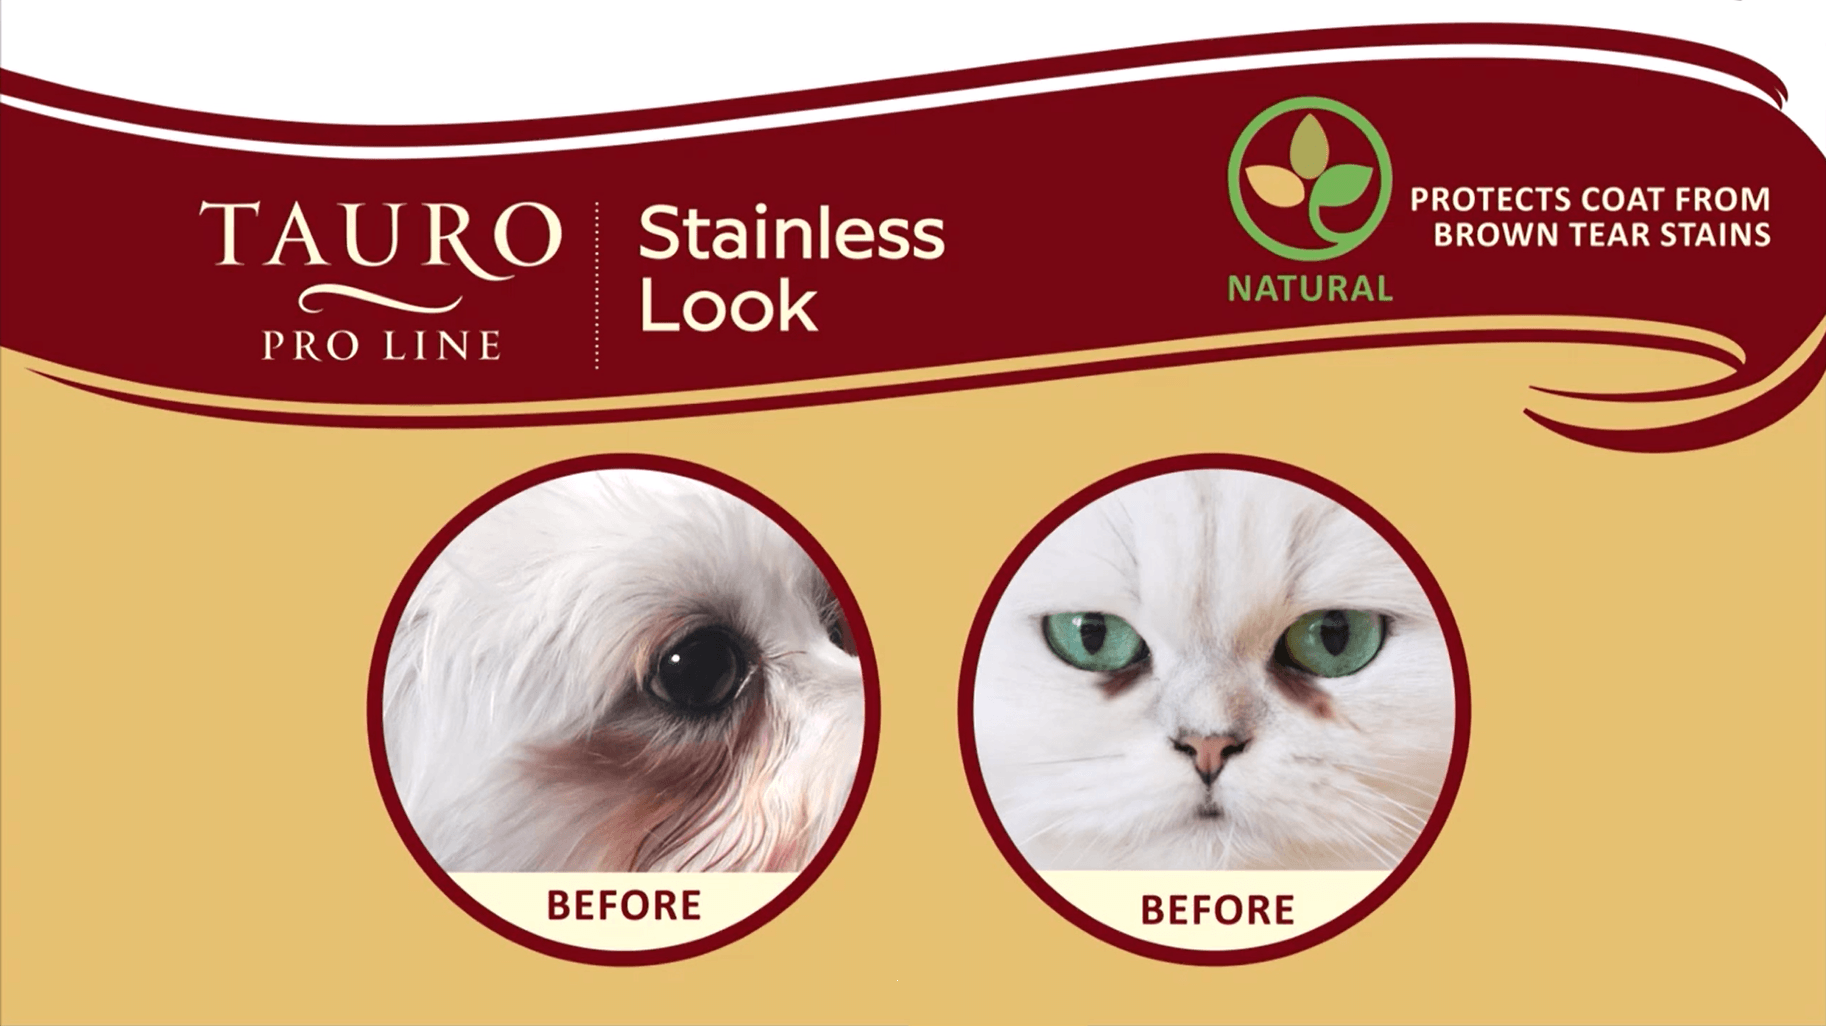 Tauro-Pro-Line-Stainless-Look_before